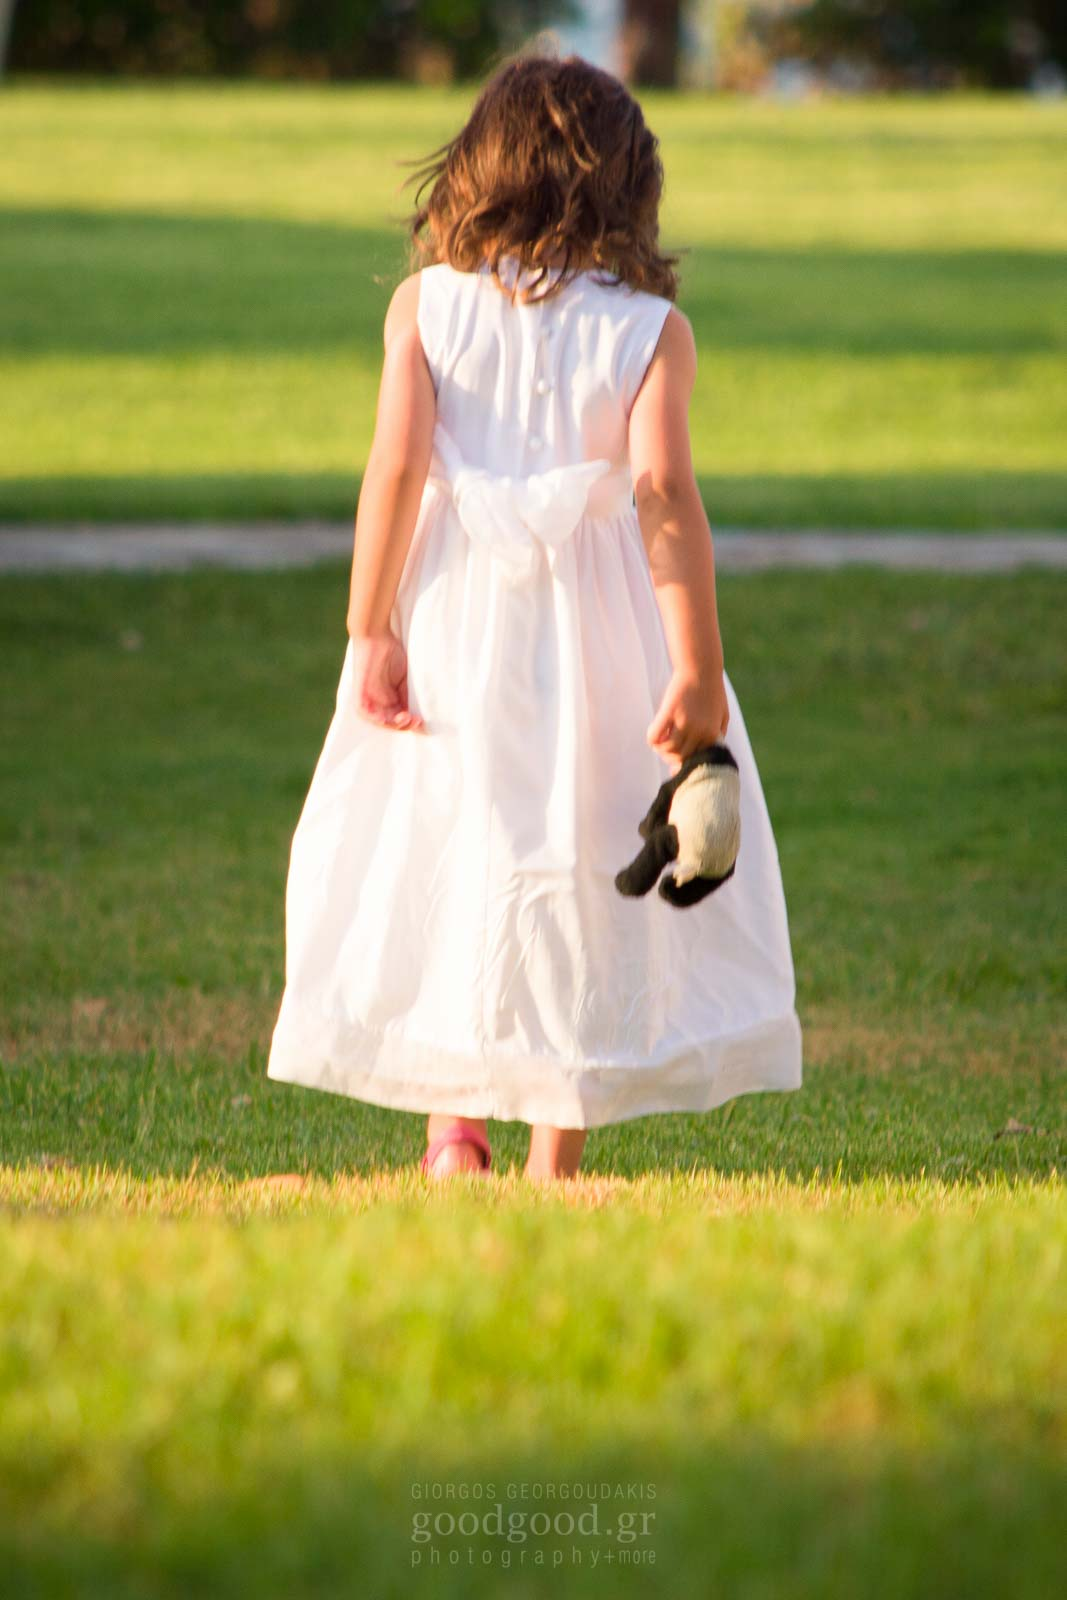 Baptism photo of a little girl standing on the grass holding a doll